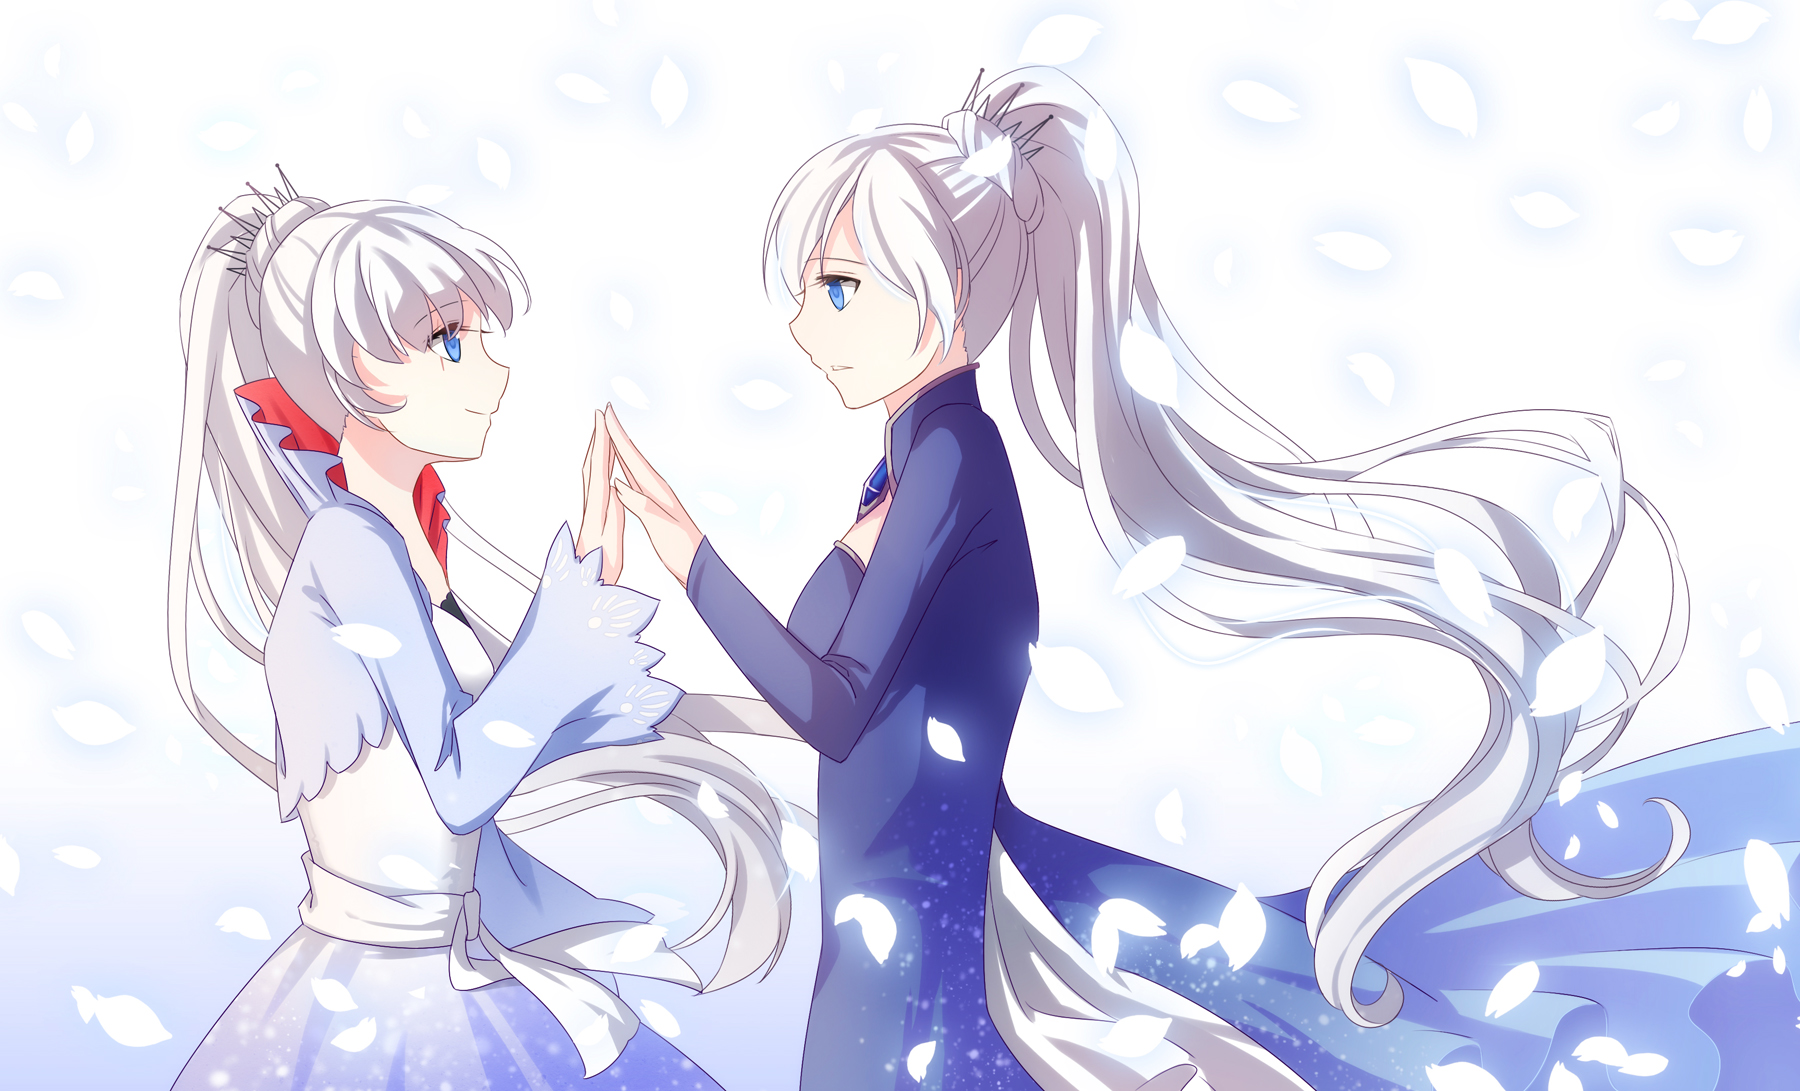 1000+ images about RWBY - Weiss Schnee (Volume 4) on Pinterest